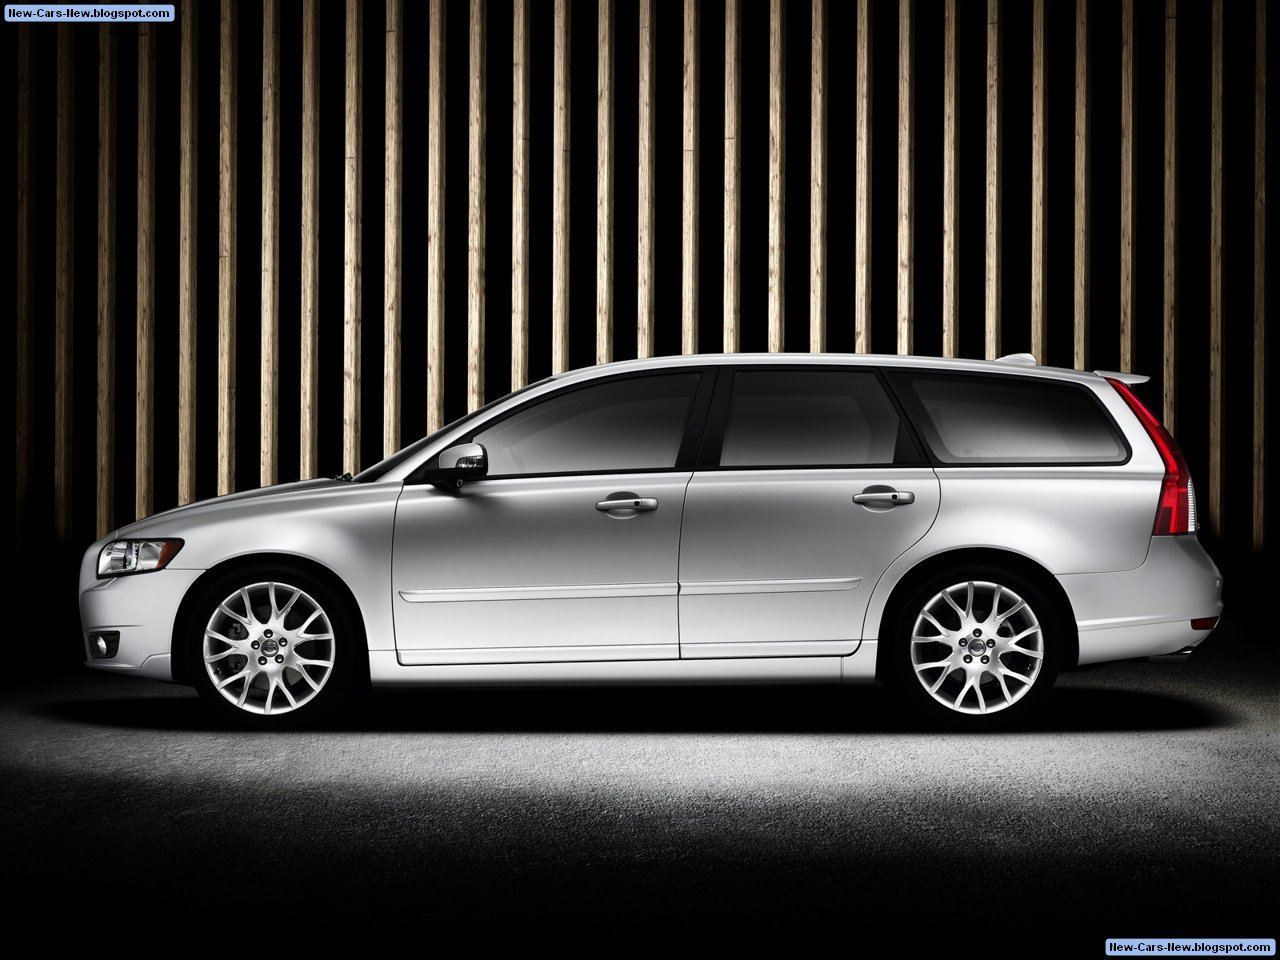 Volvo V50 (2008) - Best Car Blog: Volvo V50 (2008)